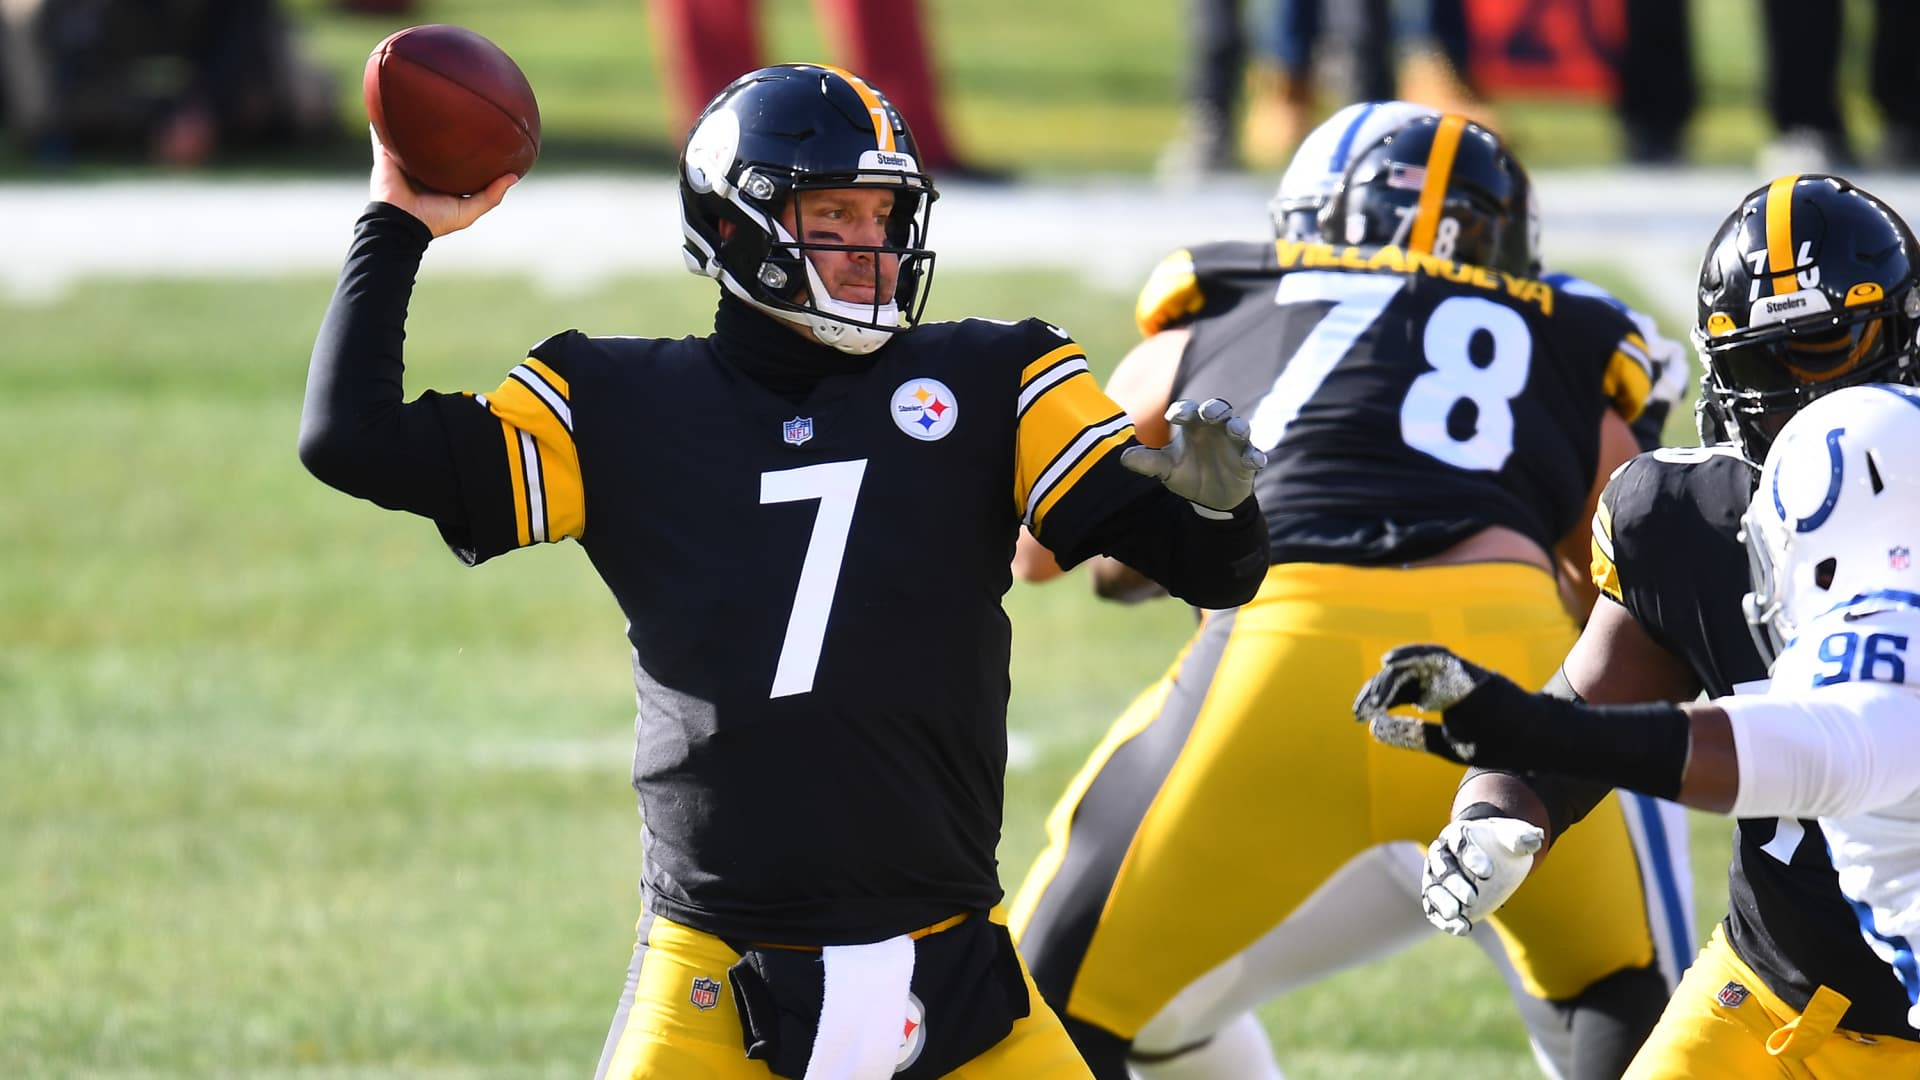 Quarterback Ben Roethlisberger #7 of the Pittsburgh Steelers passes the ball in the first quarter of the game against the Indianapolis Colts at Heinz Field on December 27, 2020 in Pittsburgh, Pennsylvania.